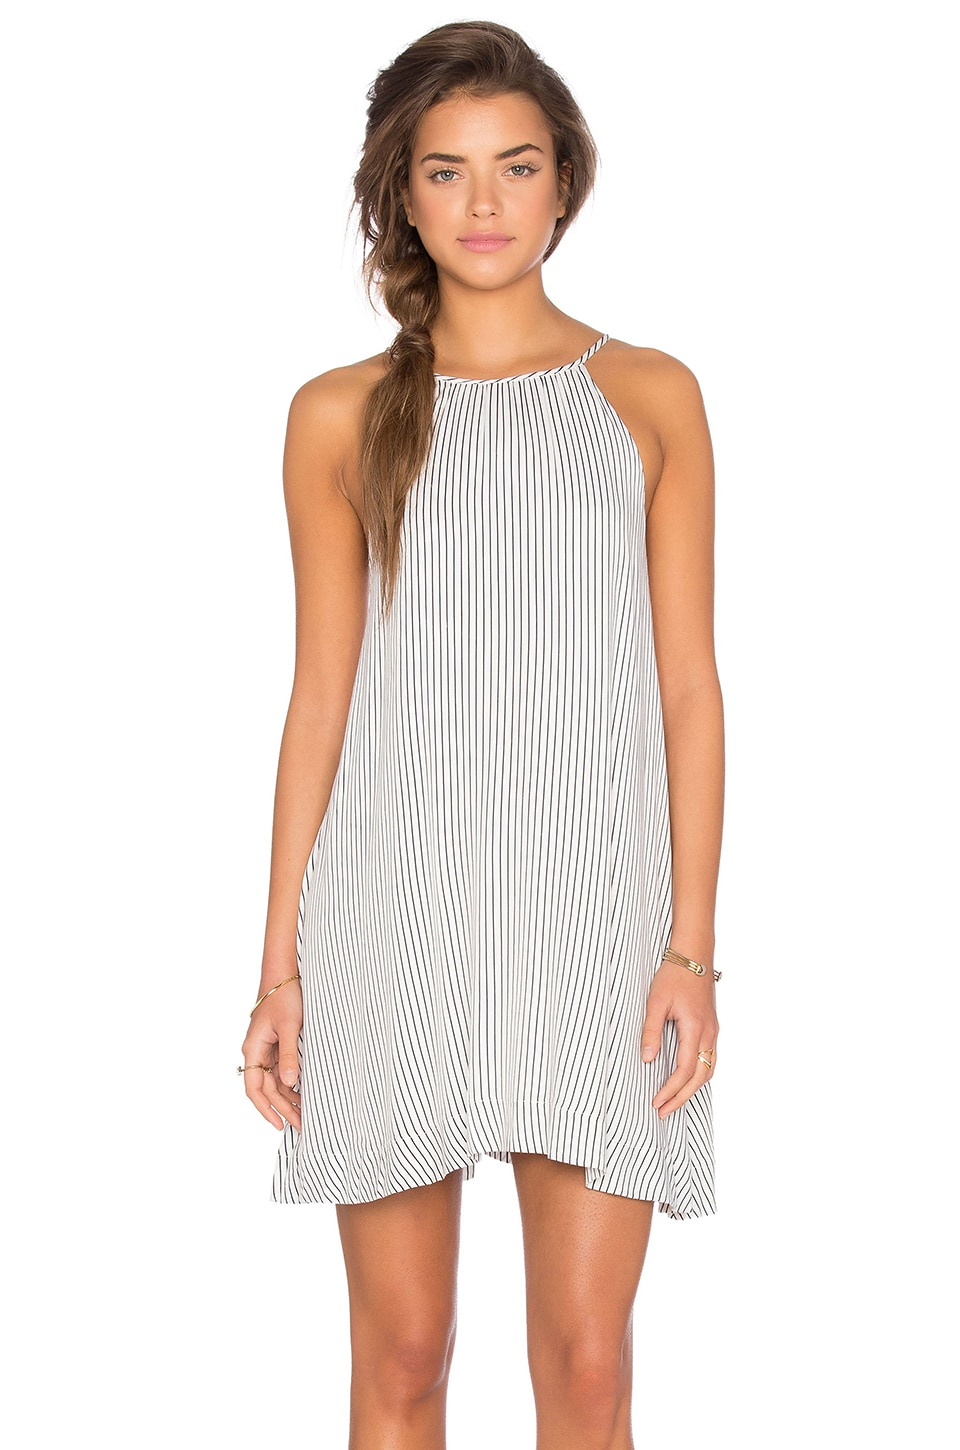 MINKPINK Spell Bound Dress in Navy & White